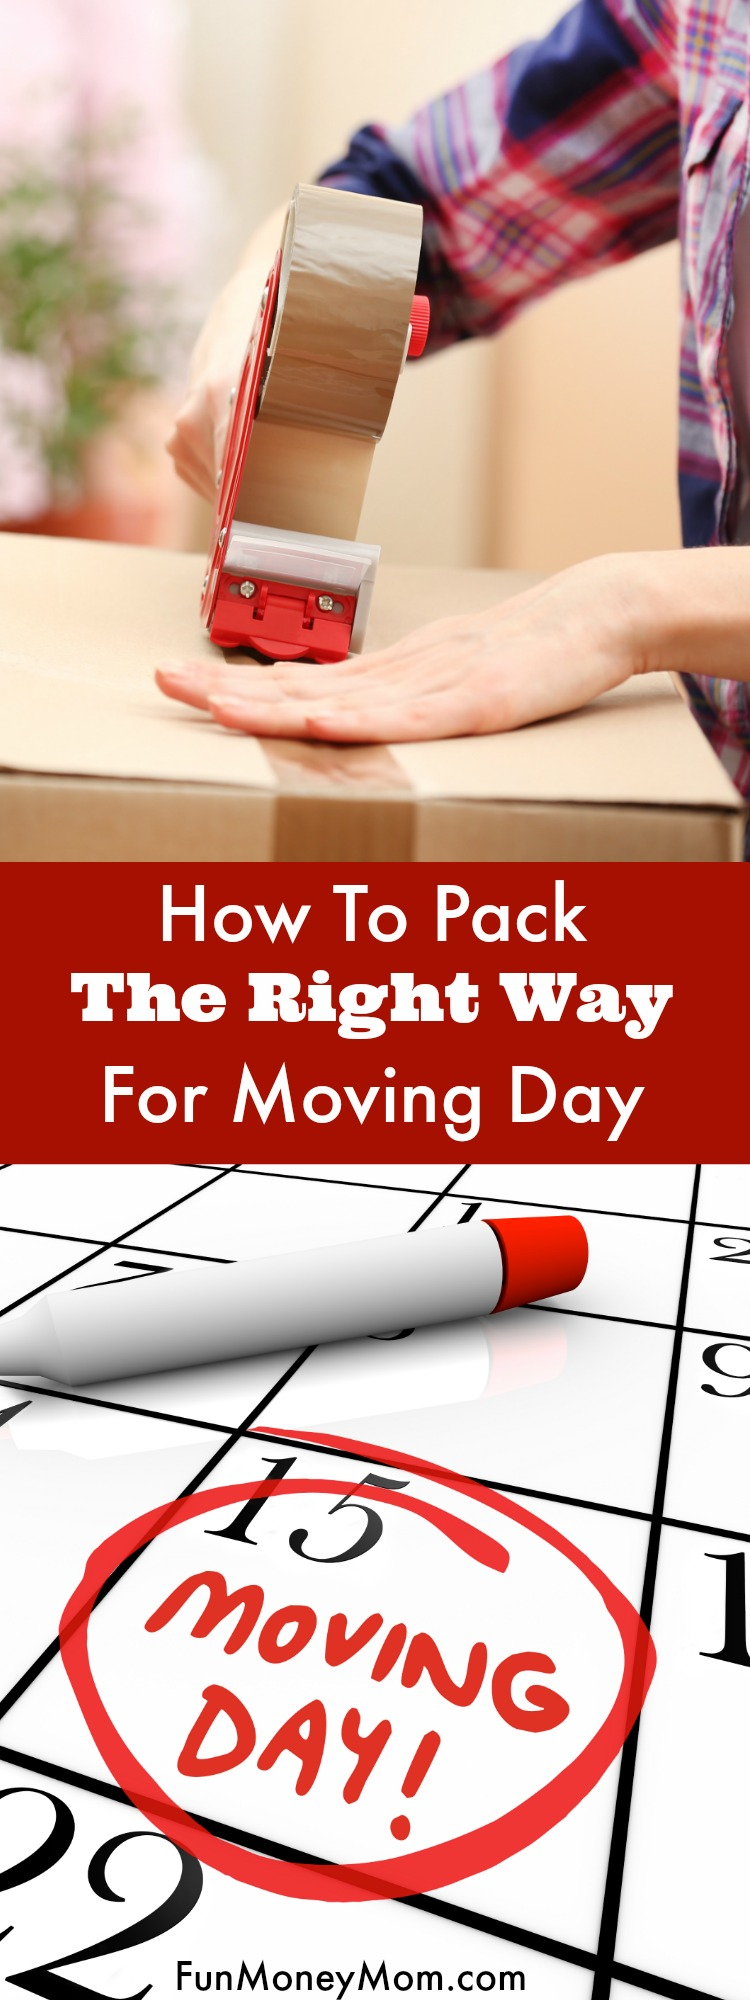 Moving into a new house? Make sure you know how to those pack moving boxes the right way!